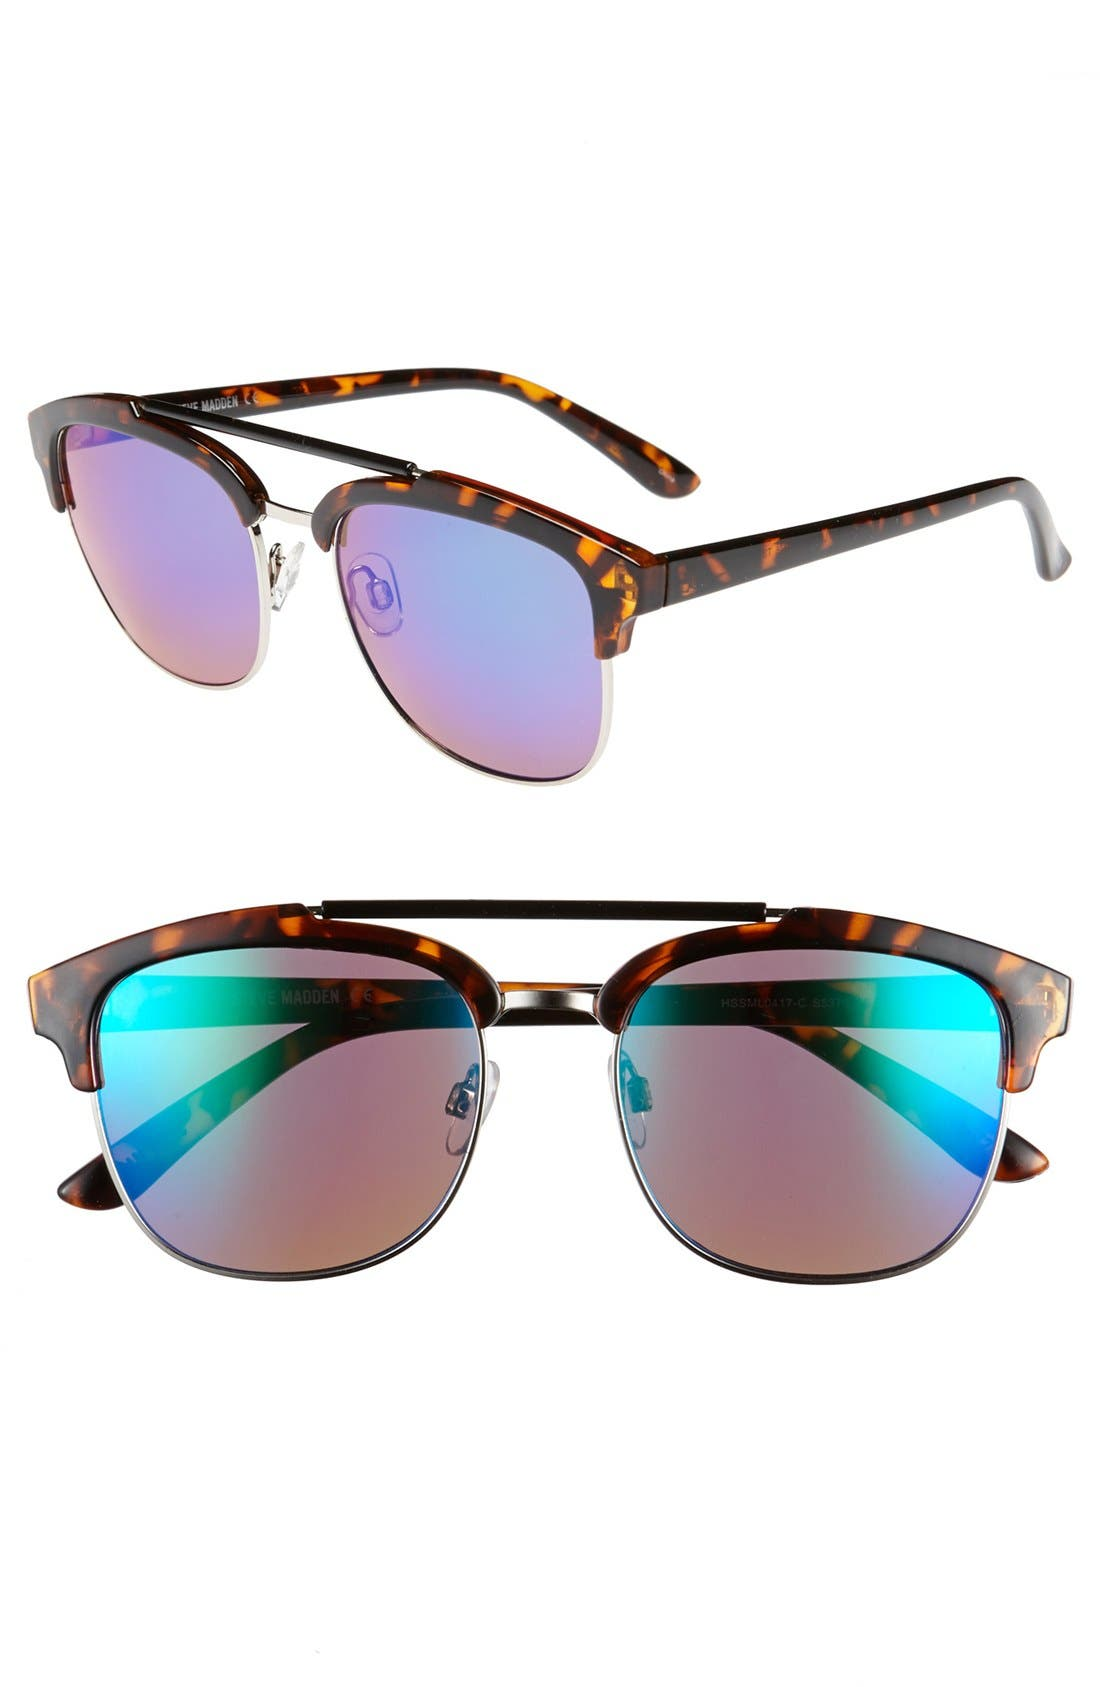 Main Image - Steve Madden 55mm Sunglasses